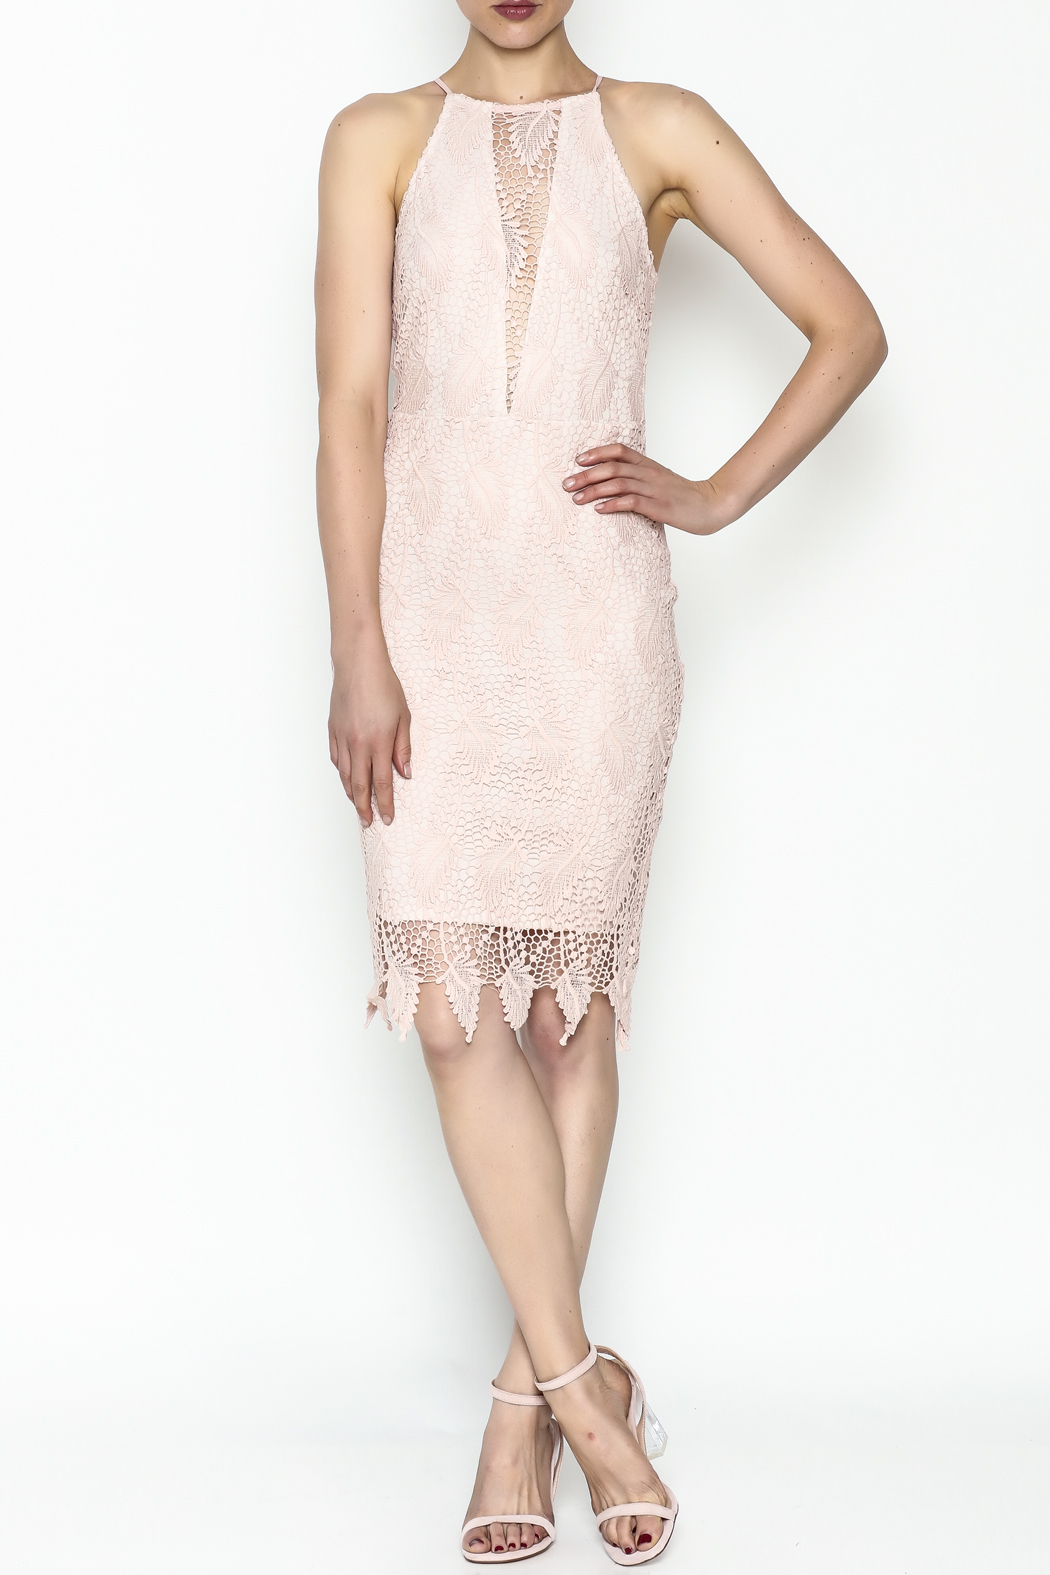 Ark & Co. Lace Bodycon Dress - Side Cropped Image